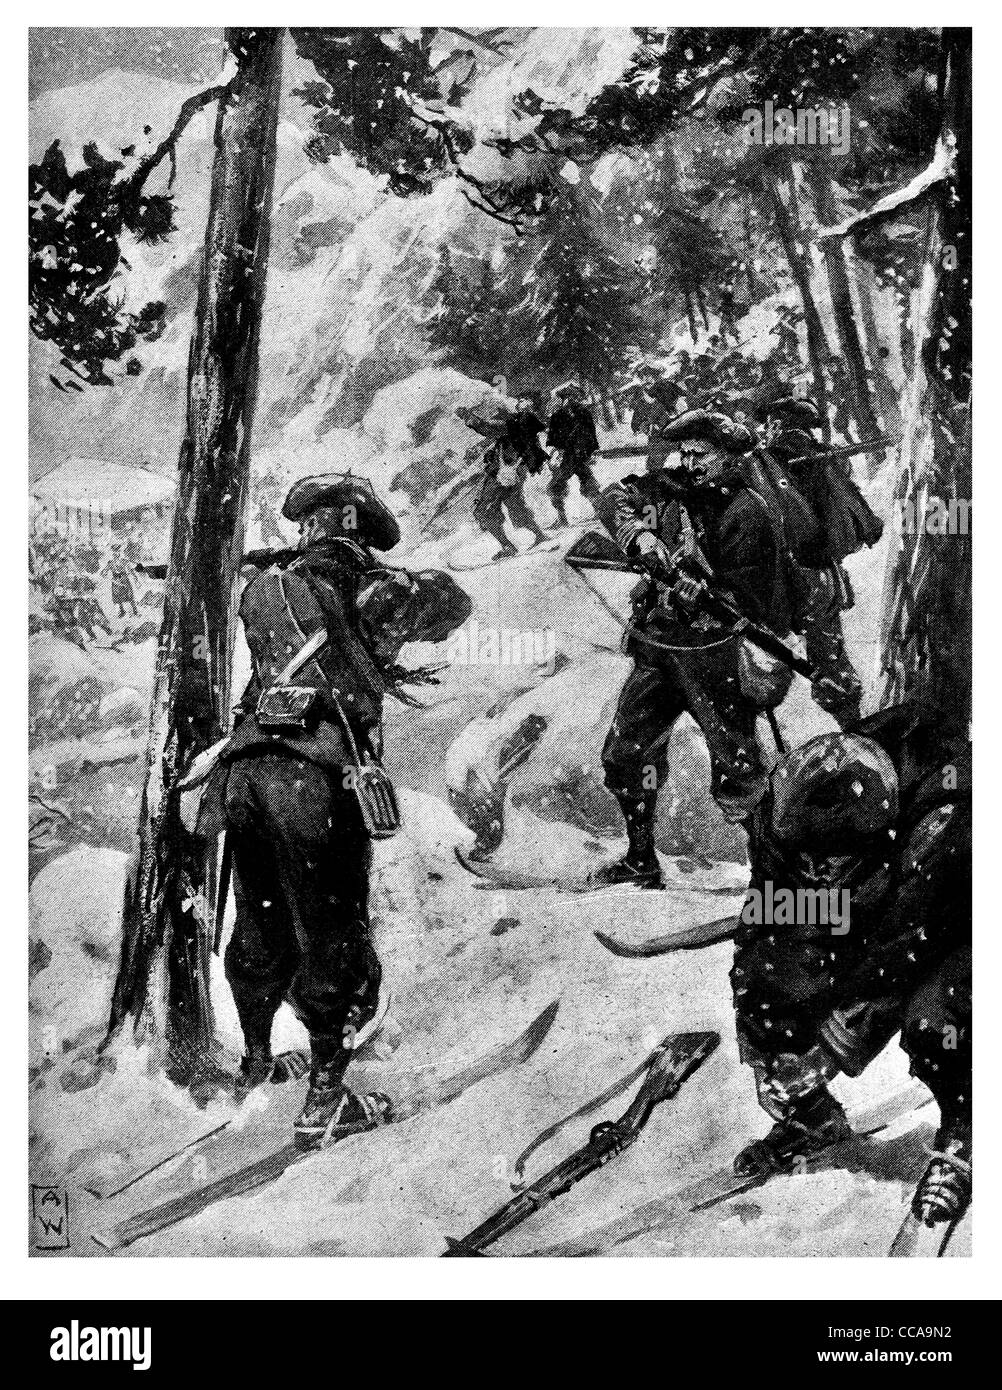 British French Vosges Pass mountain range snow winter 1914 pine forest woods rifle fire snowing front line skis - Stock Image